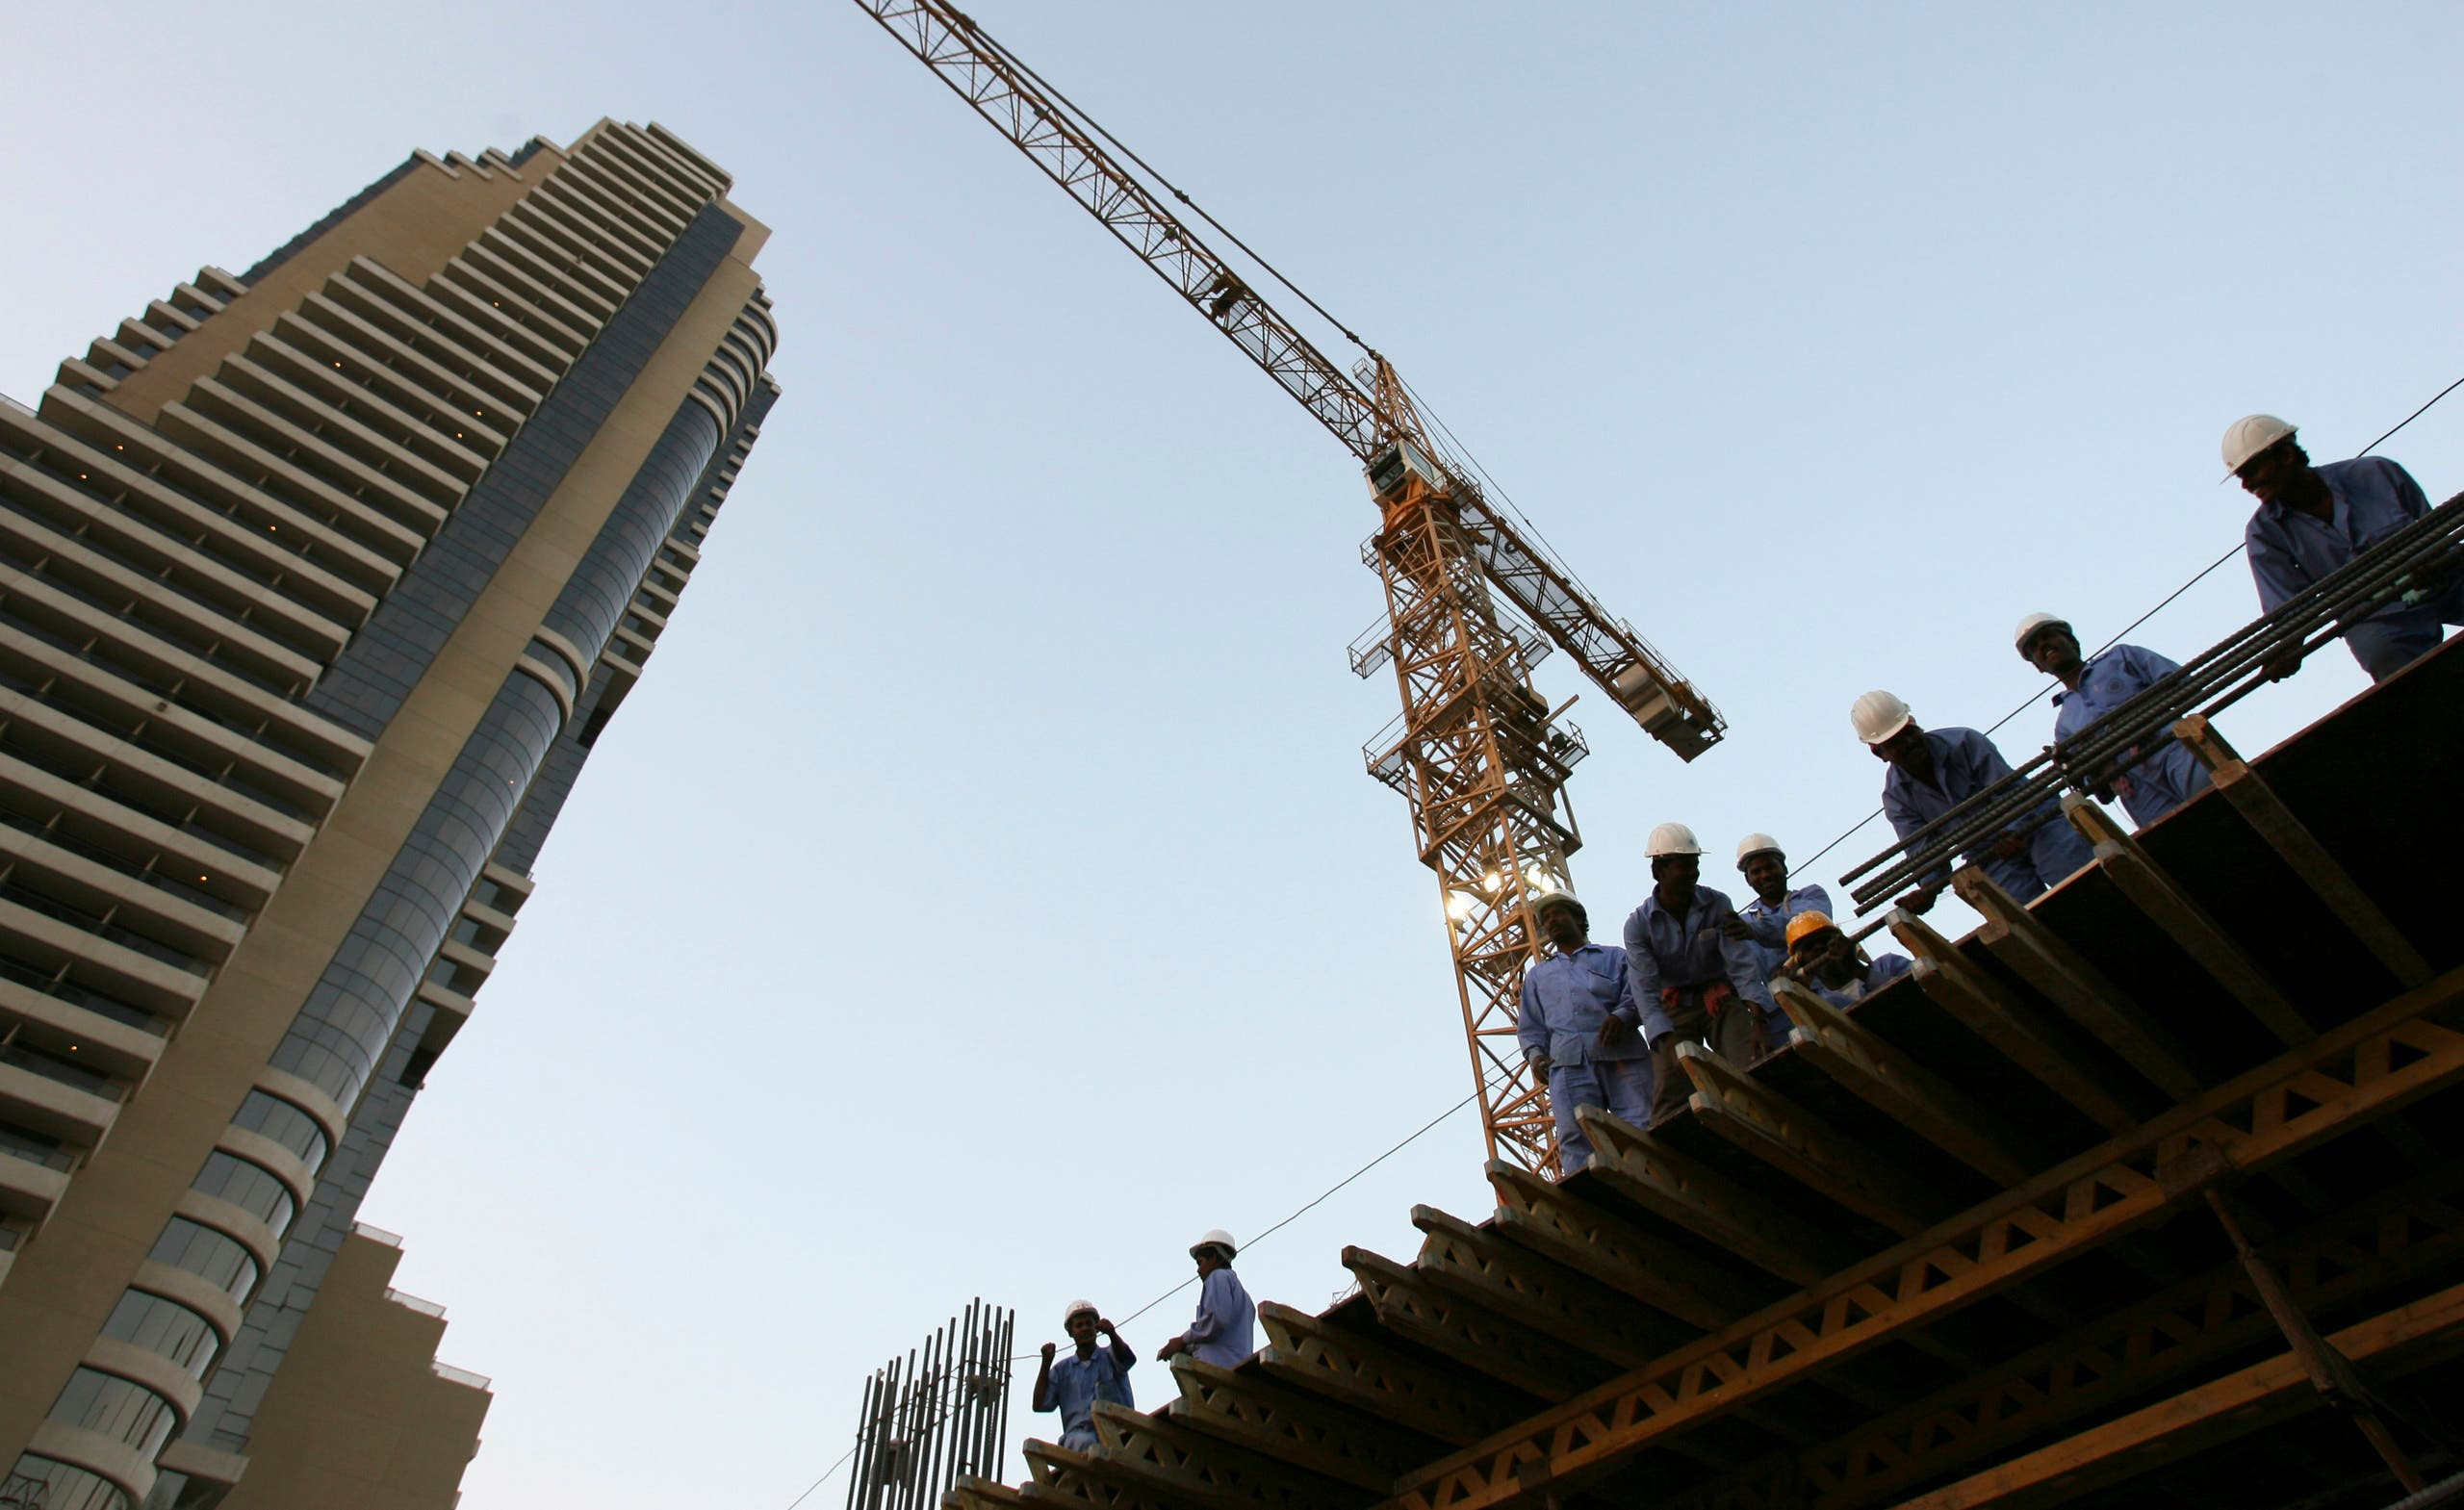 Foreign workers are seen in a bus at a construction site in Dubai, United Arab Emirates, November 13, 2006. (Reuters)